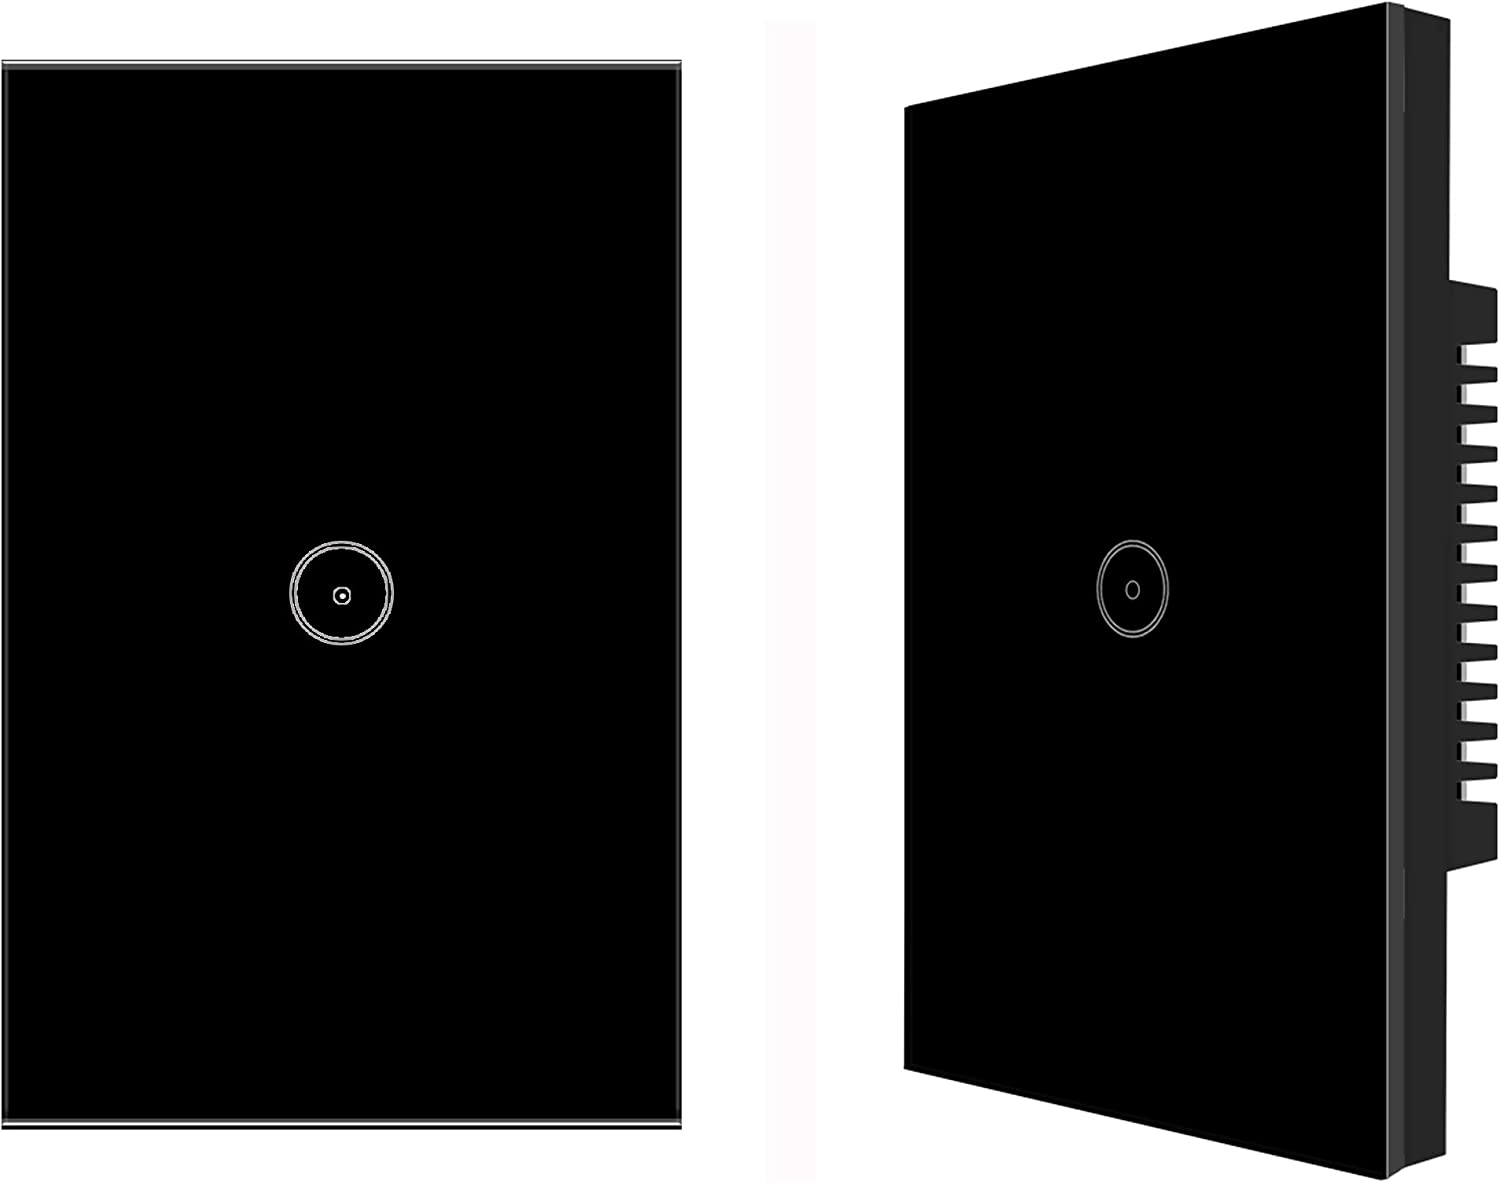 Jinvoo WiFi Wall Light Touch Panel Switch, Remote Control with Smart Phone,No Hub Required, AC 120V, Compatiable with Alexa Echo, Works with Google Home (2pack)